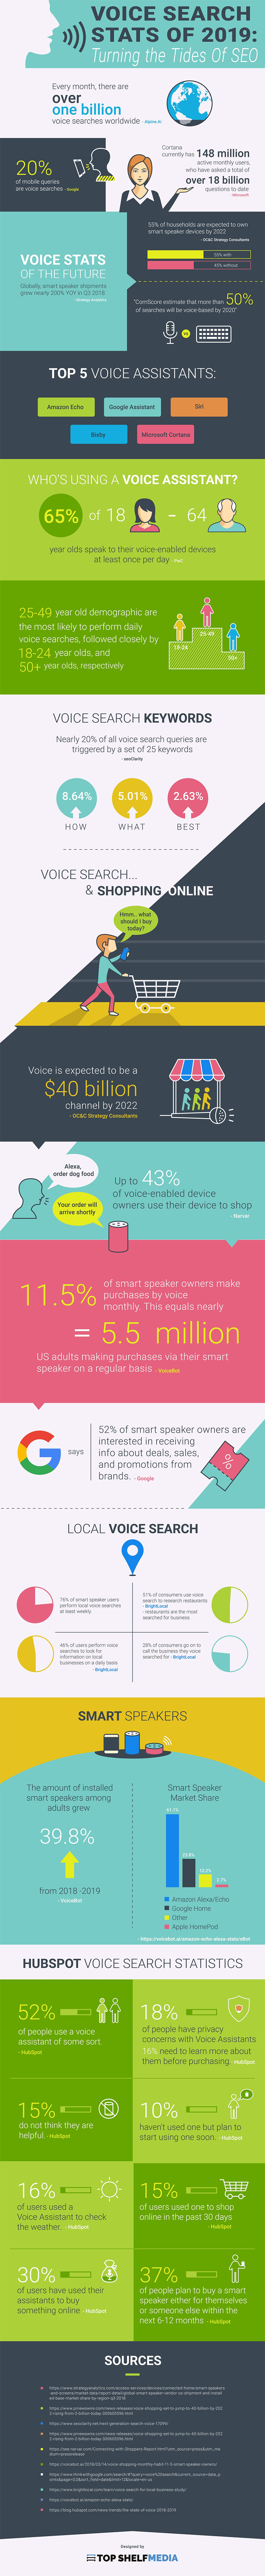 Infographic outlines a range of voice search usage stats and trends